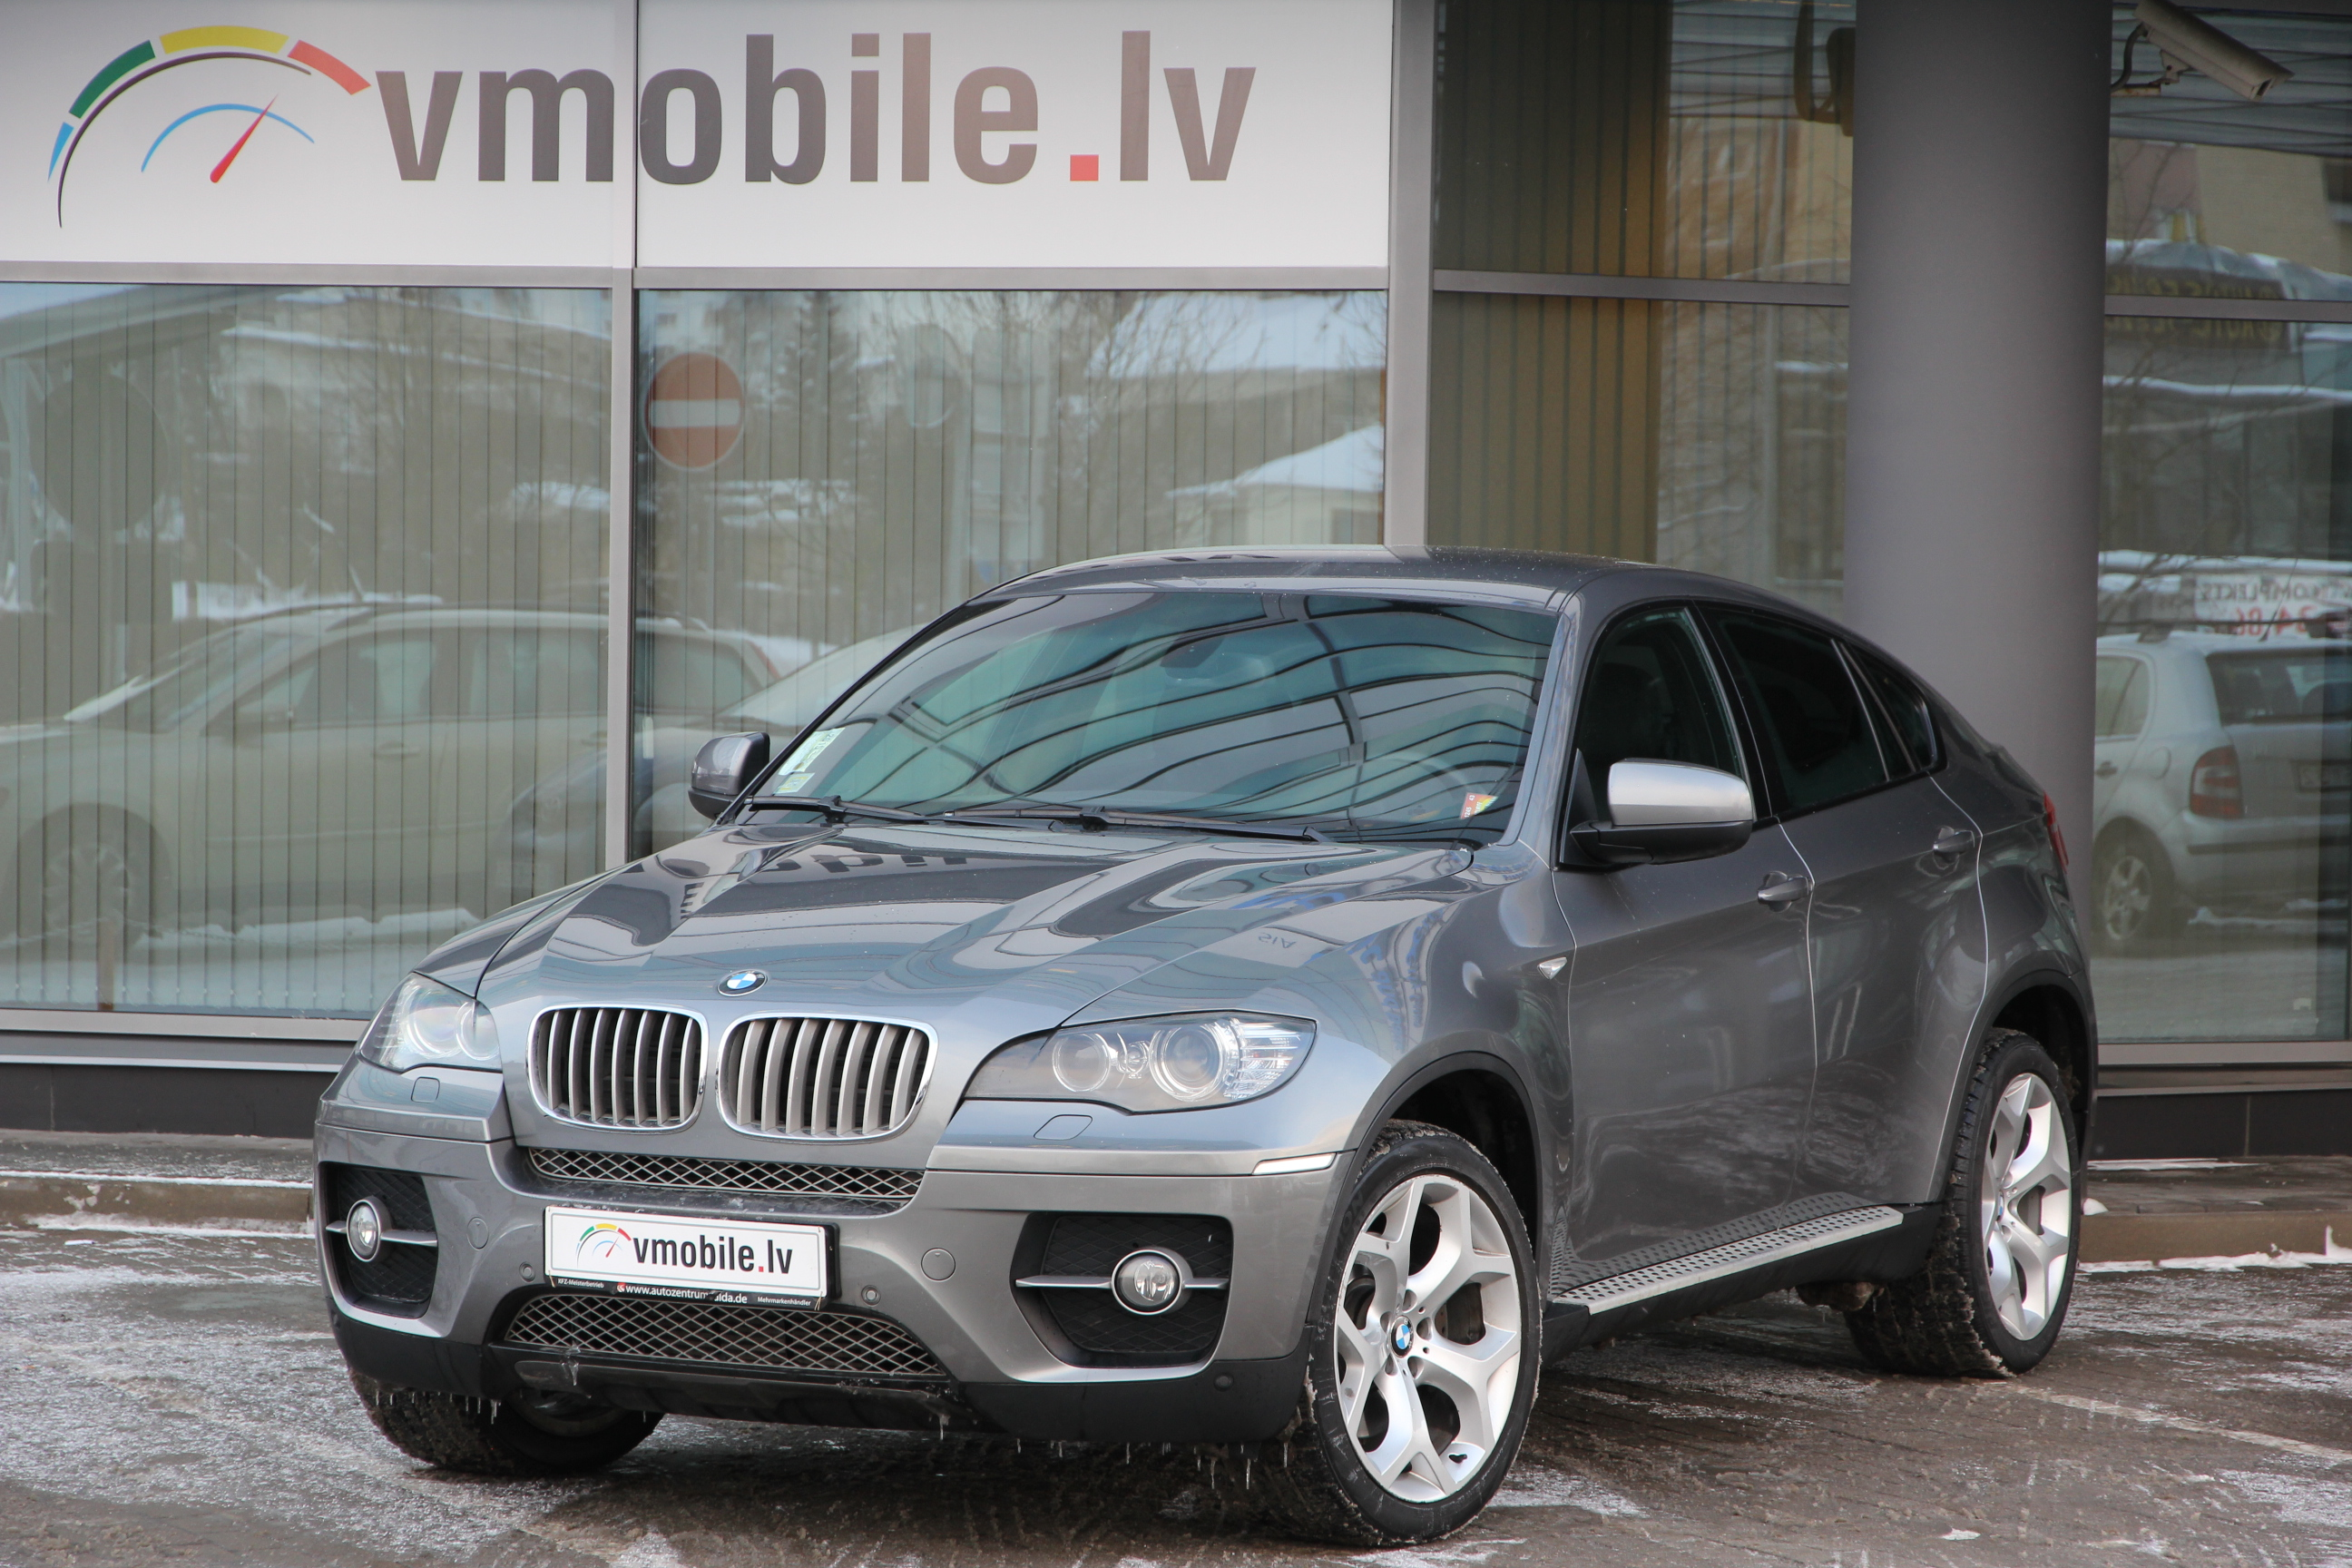 vmobile lv bmw x6 35d xdrive. Black Bedroom Furniture Sets. Home Design Ideas